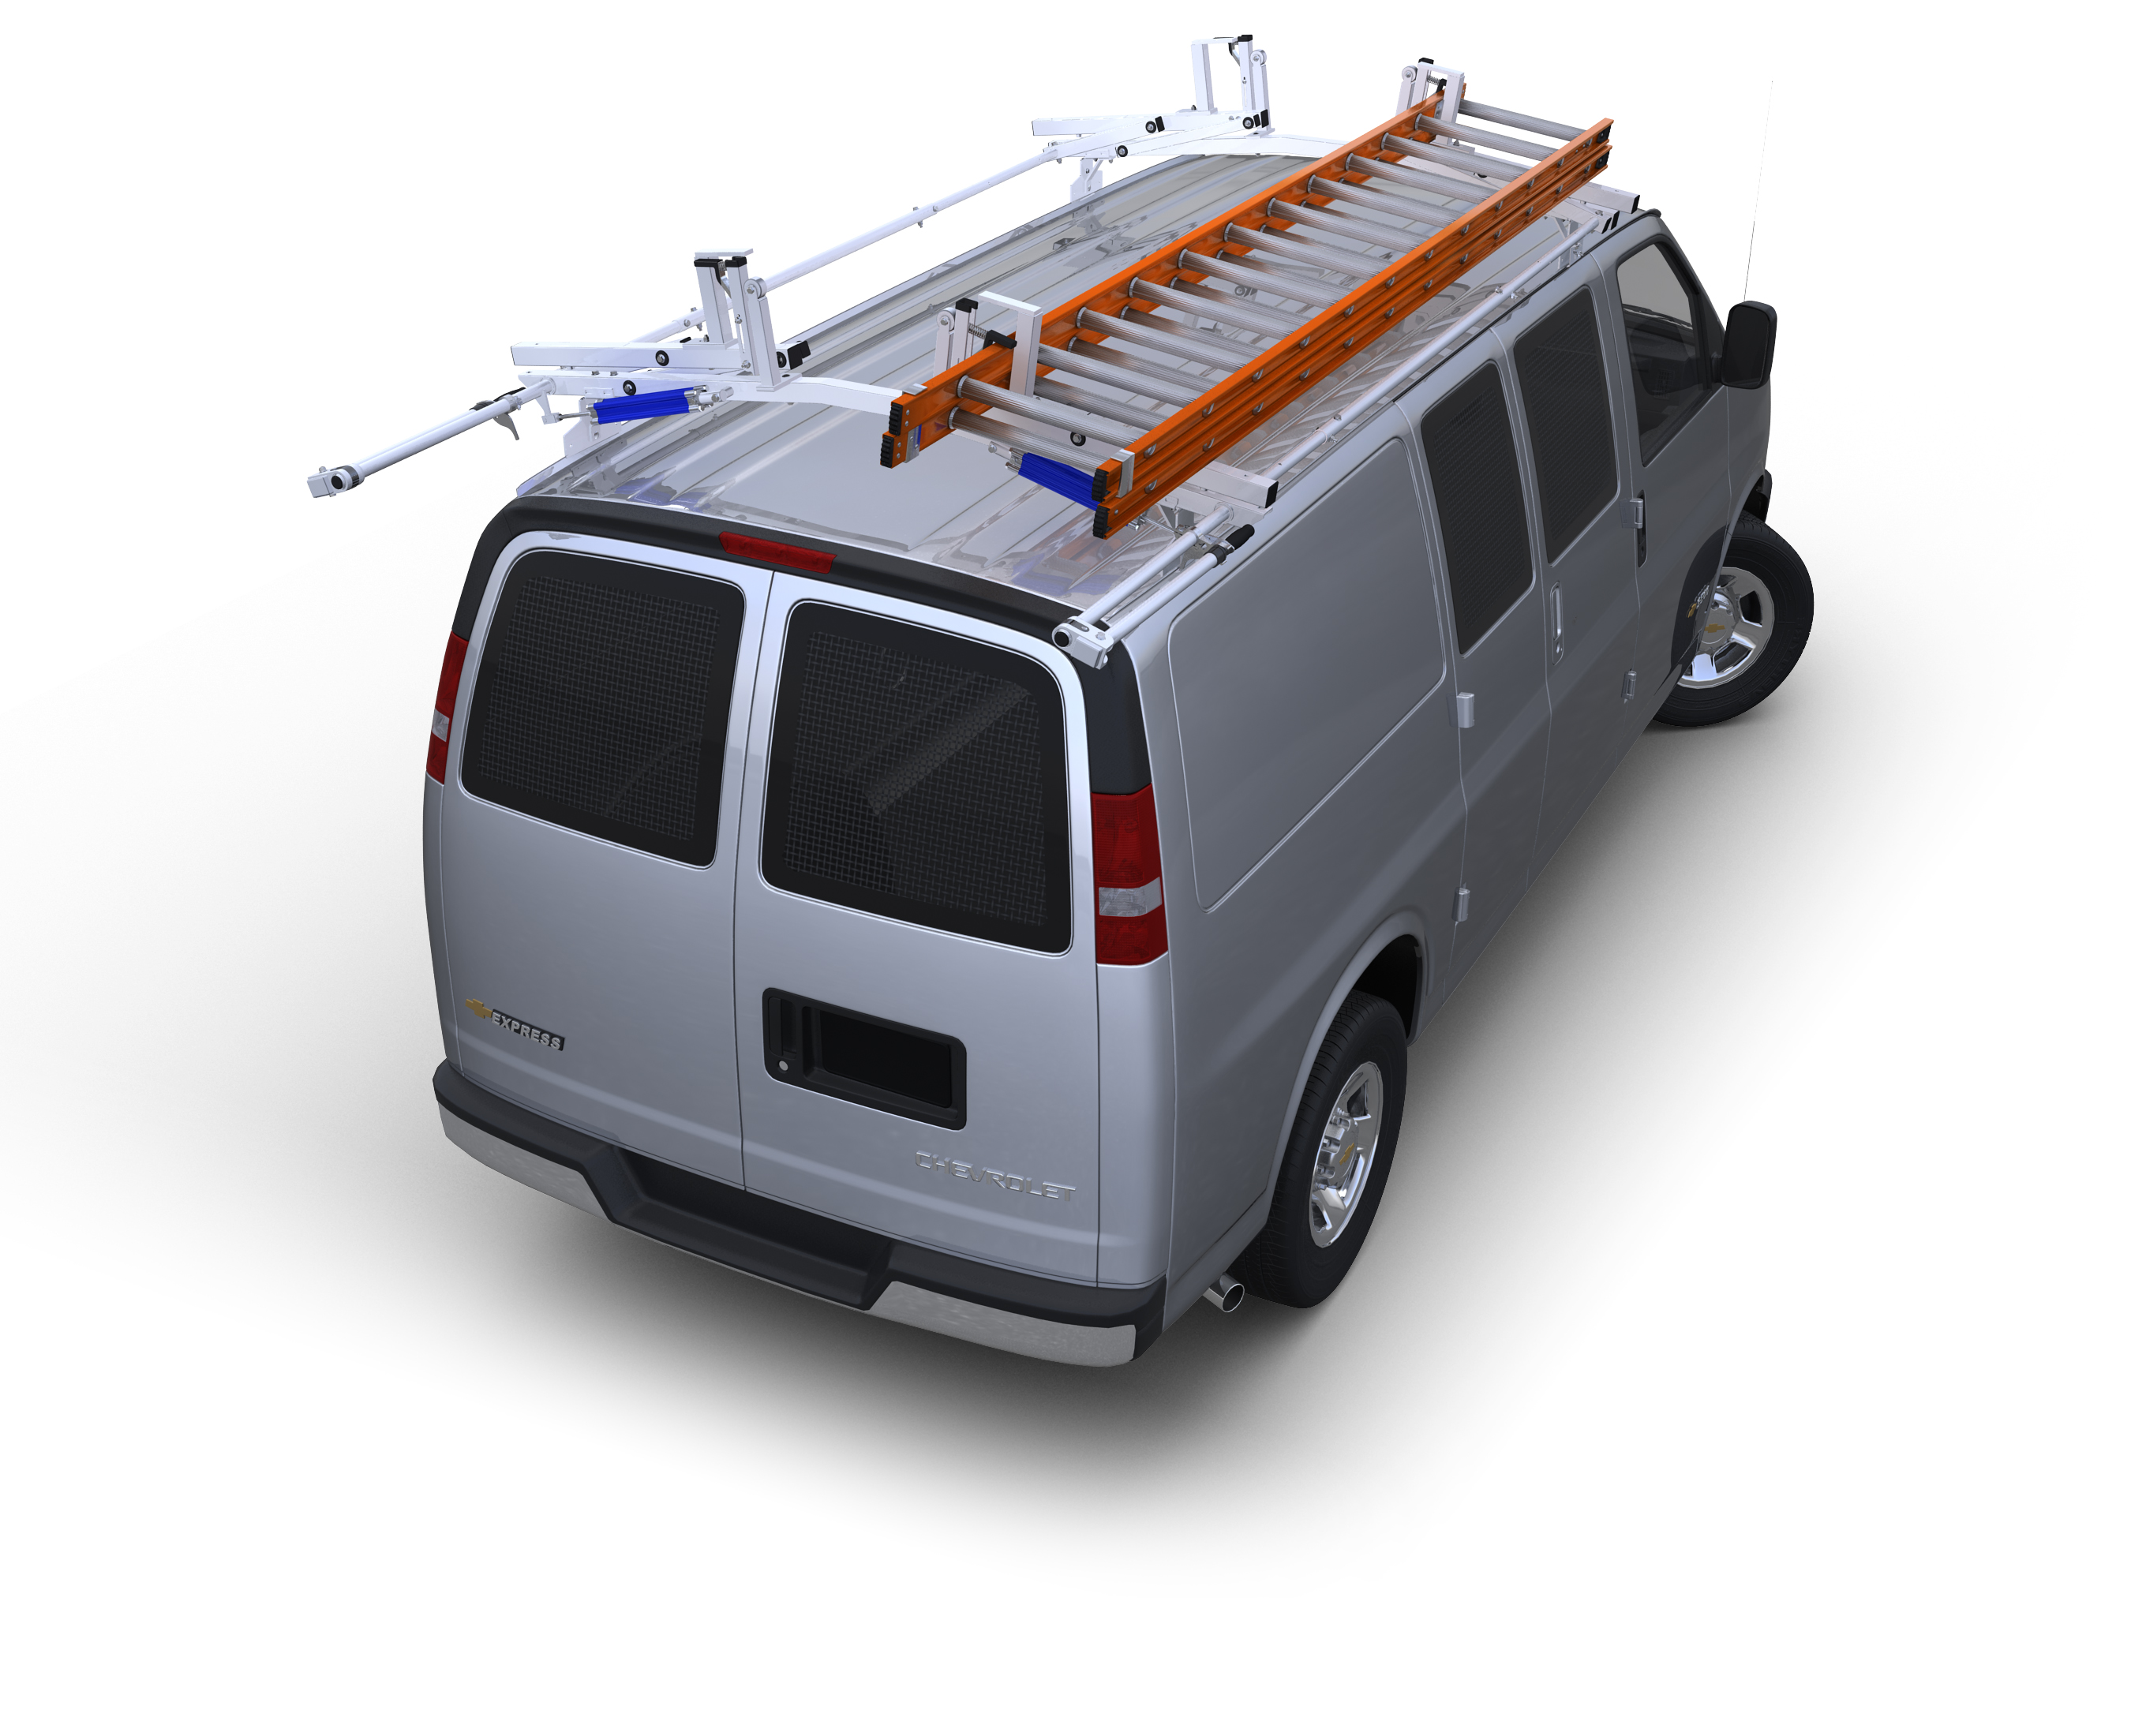 System One Utility Body Racks for 8'or 9' Standard or Extended Cabs